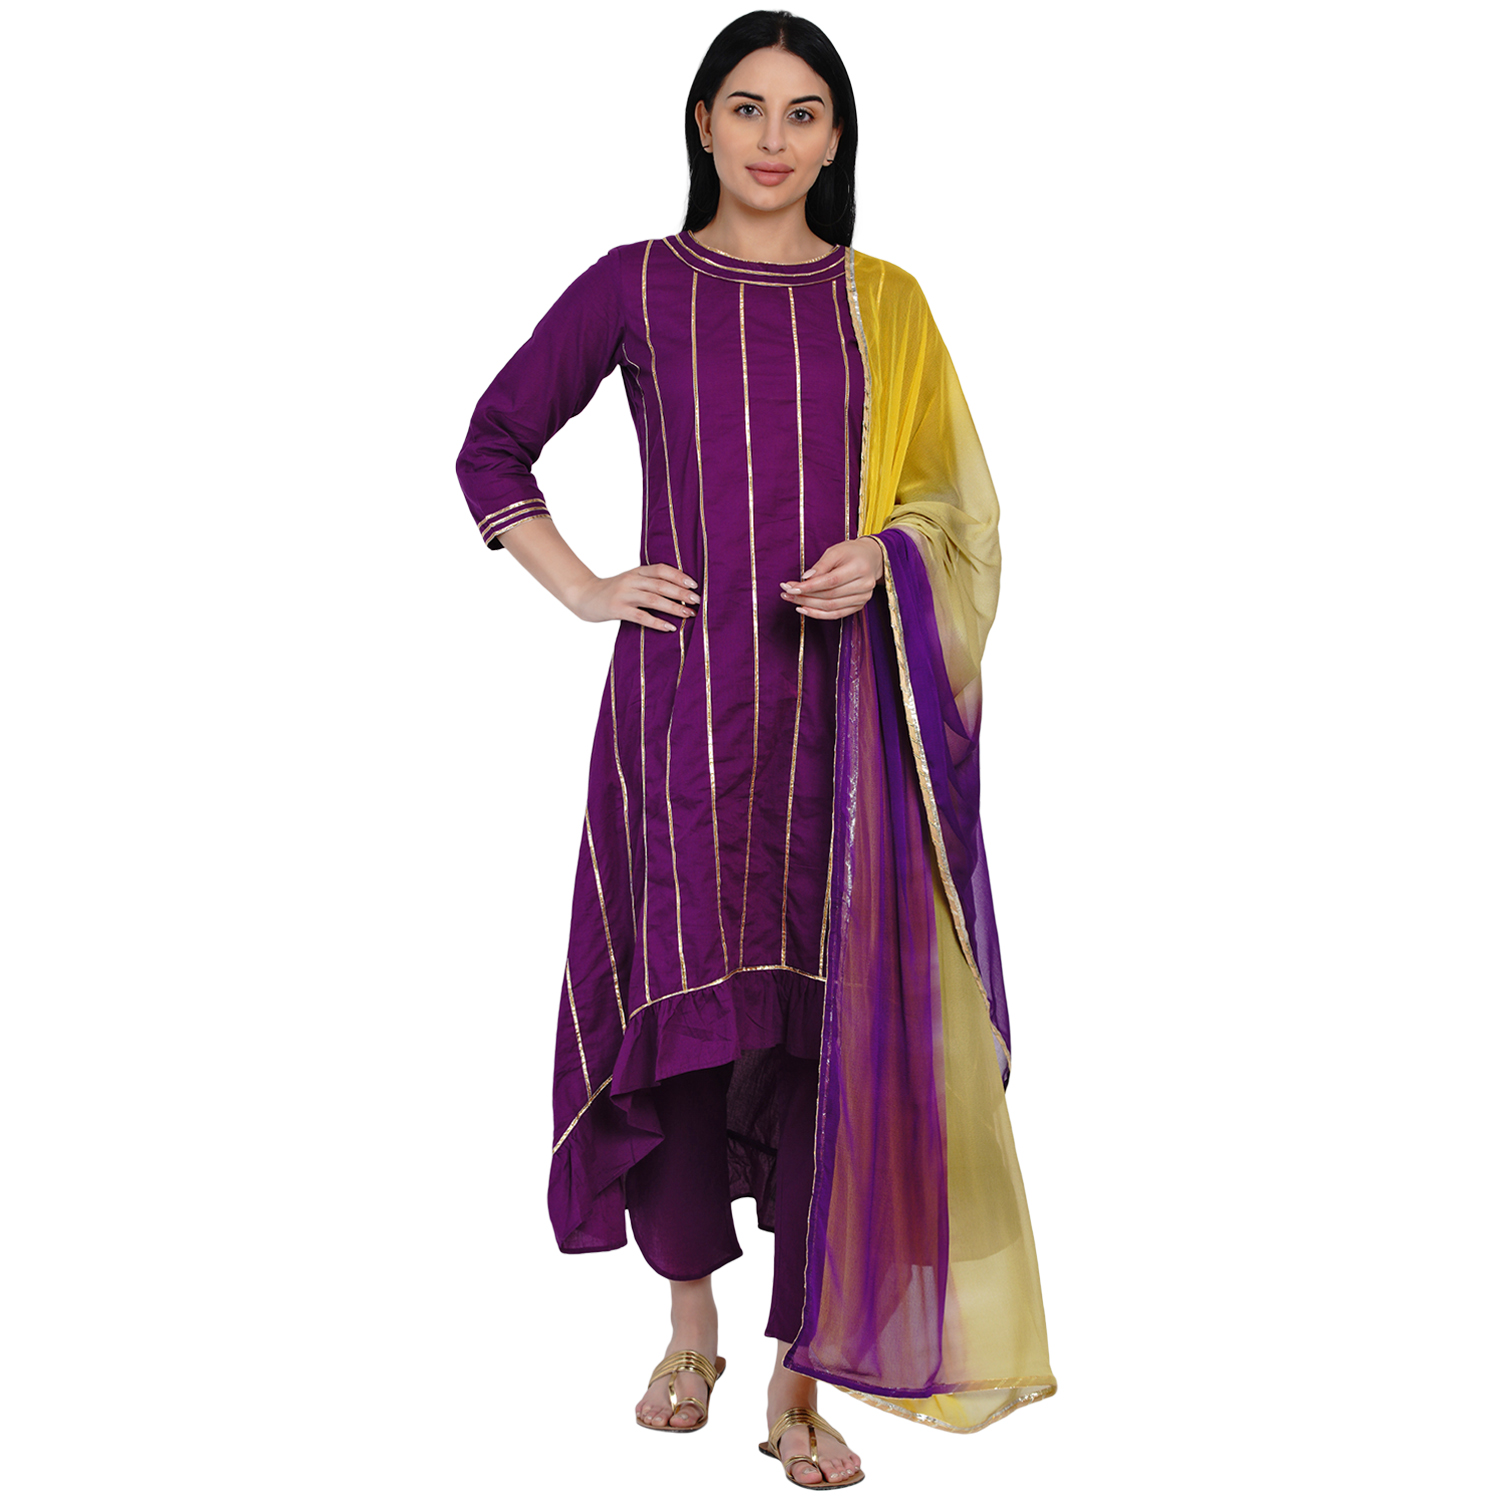 Fabnest   Fabnest Womens Purple Cotton Assymetrical Kurta With Gota And Petal Pant Set Along With Tie And Dye Dupatta With Gota